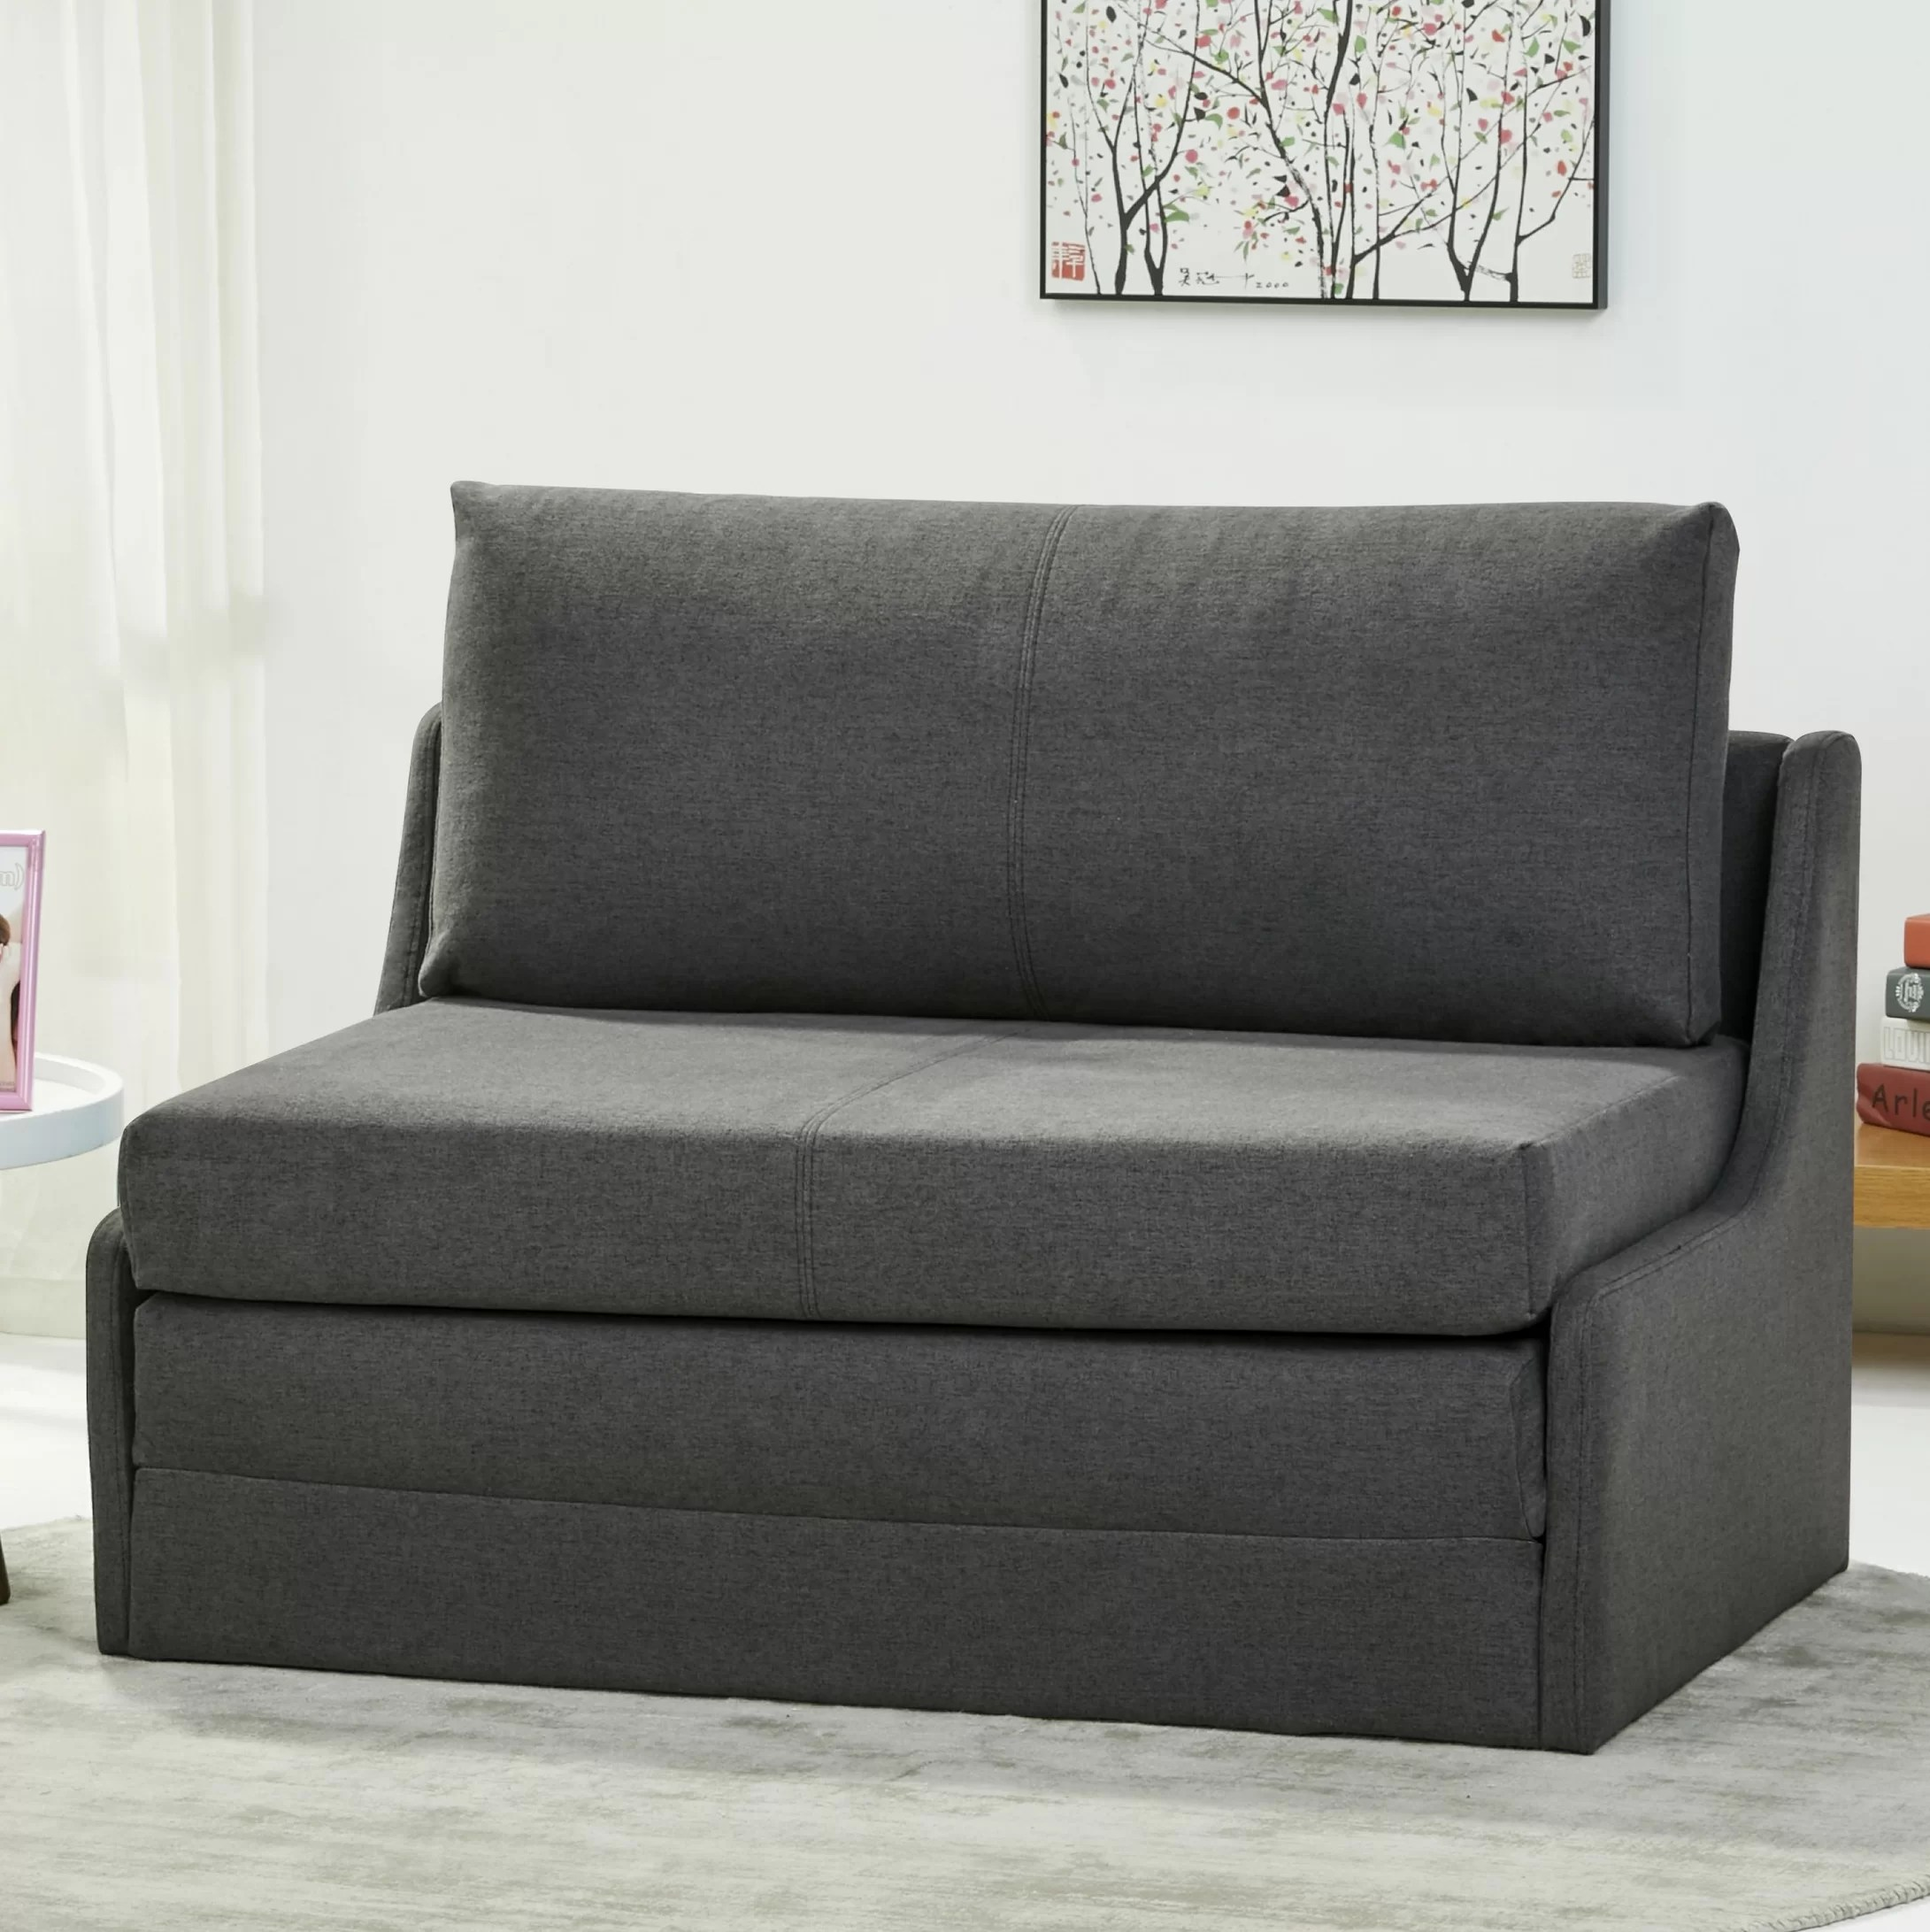 Designer Sofas Trustpilot Dosie 2 Seater Fold Out Sofa Bed